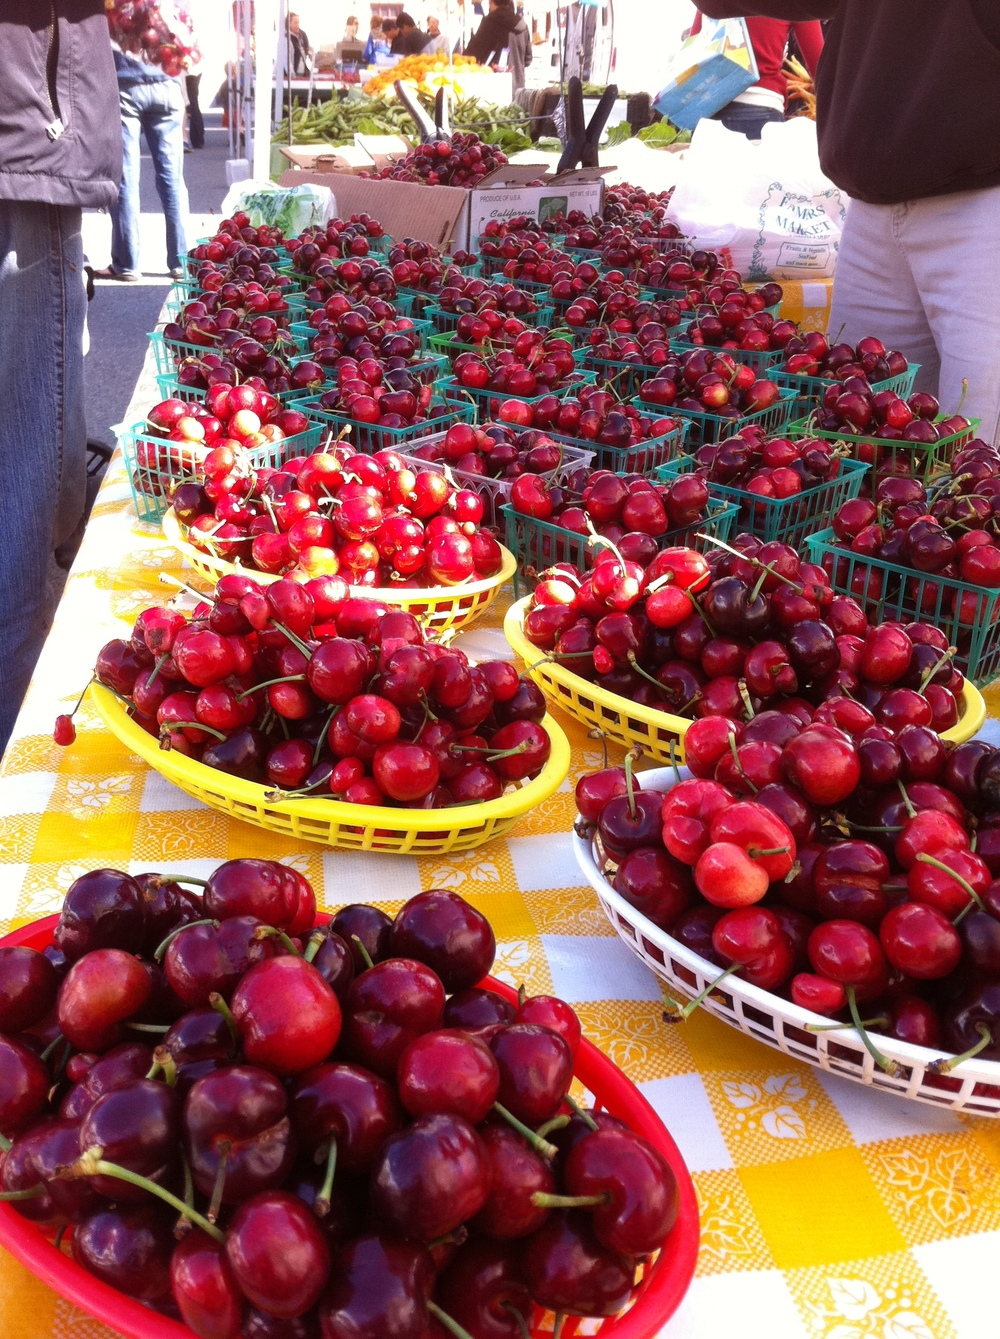 cherries - fmc photo3.JPG